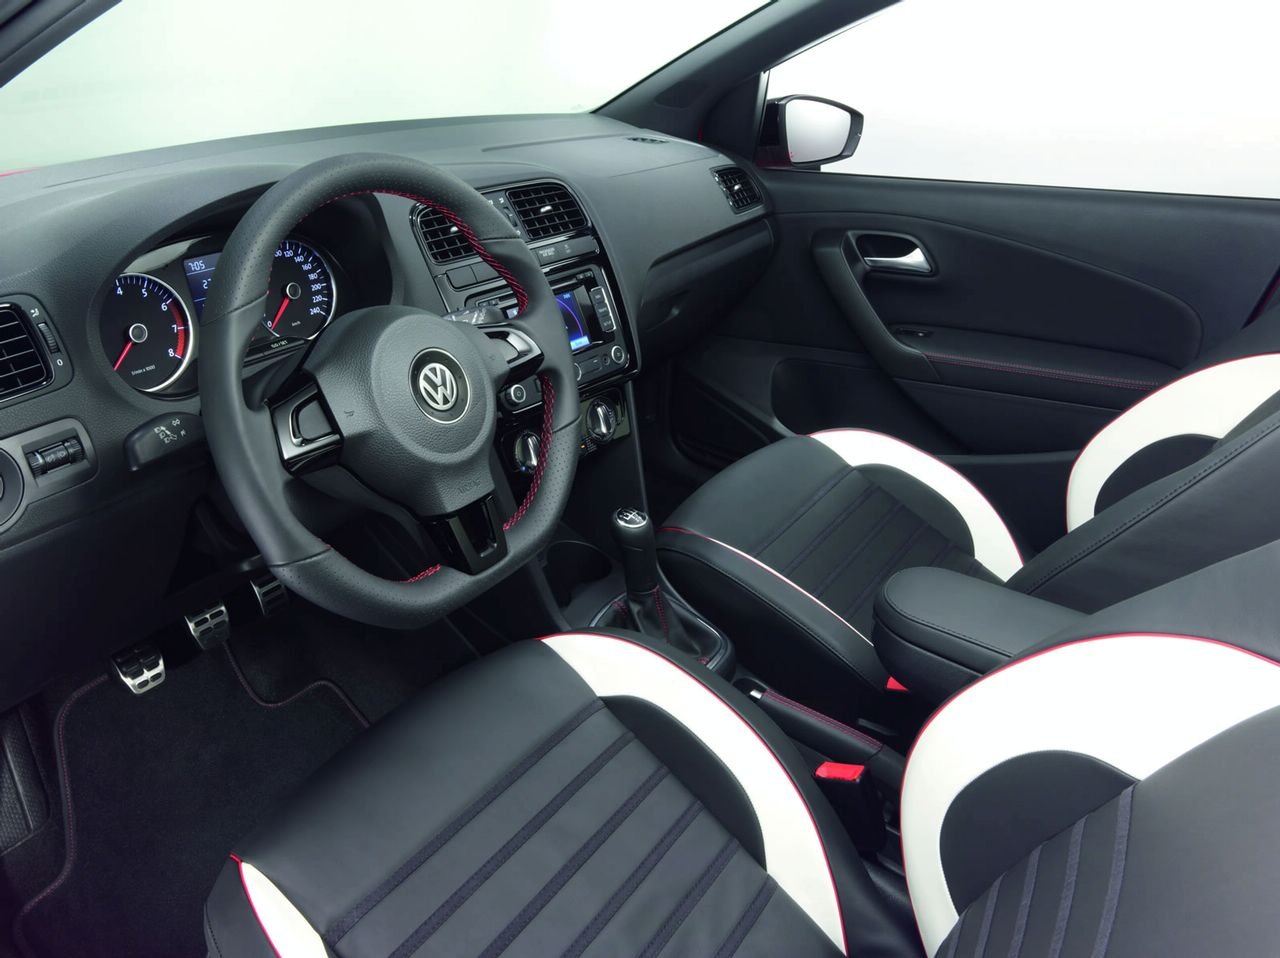 Polo Gti Interior Vw Tuning Mag